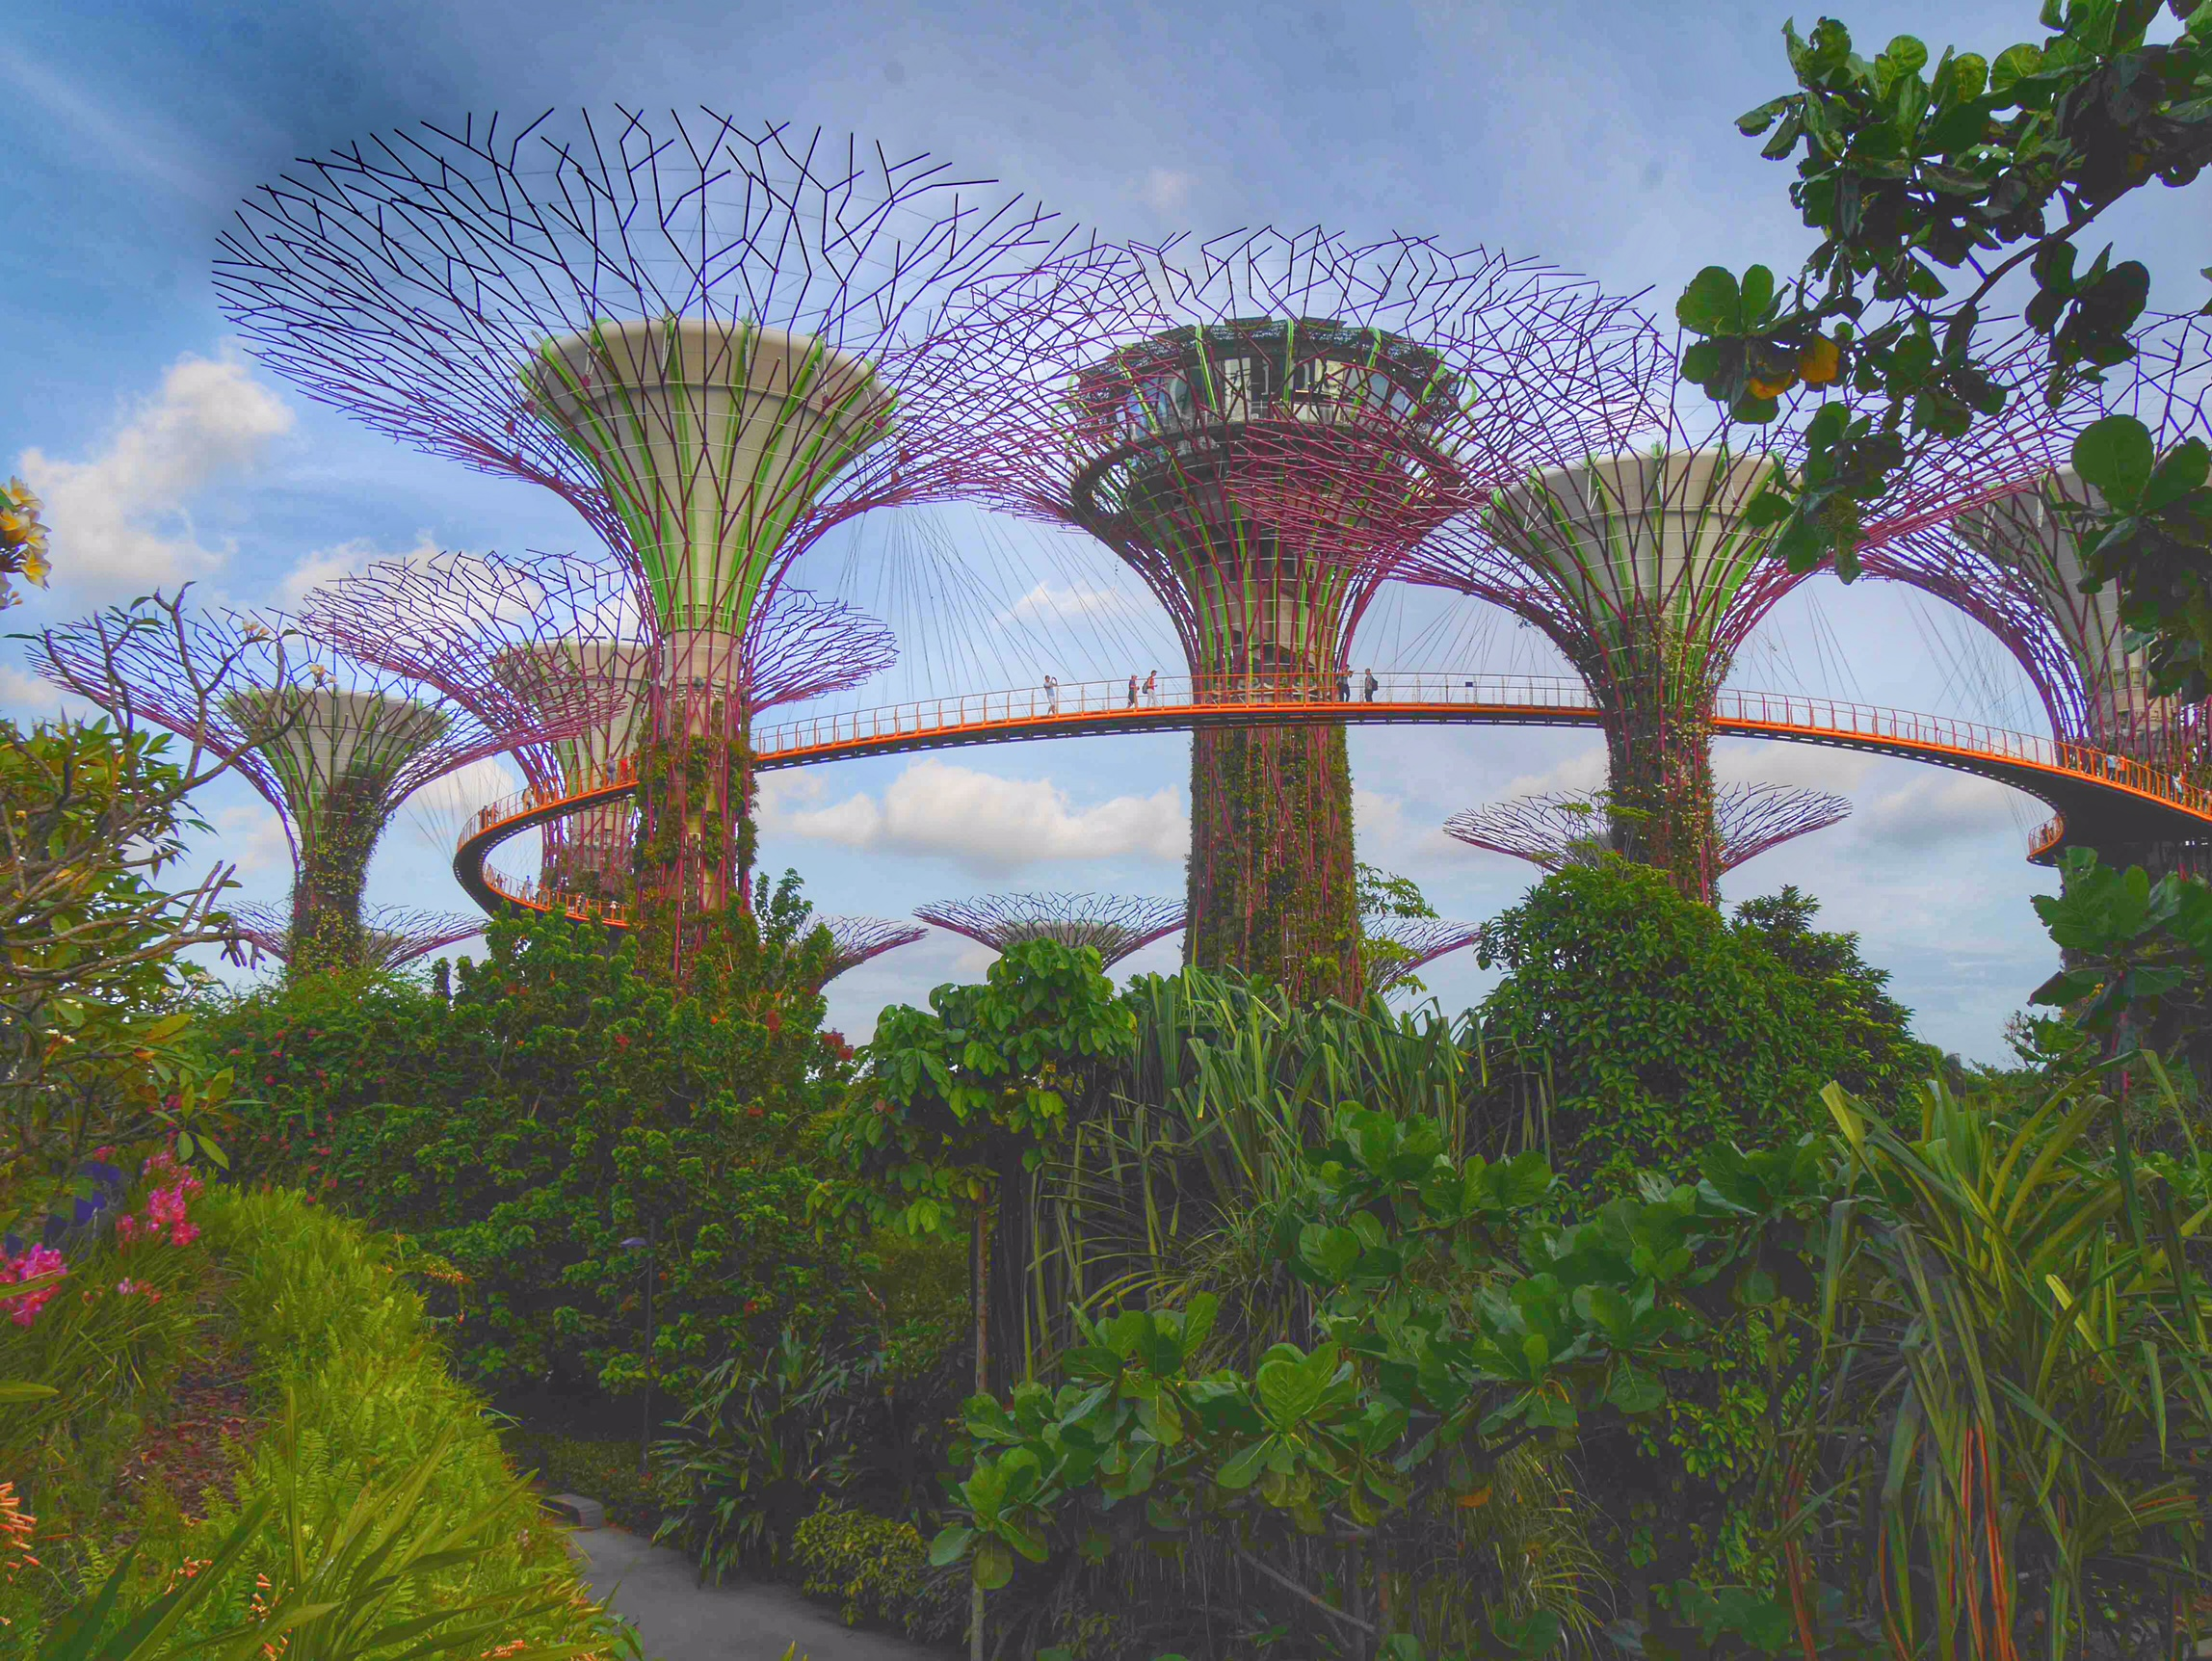 Supertree grove Singapore thesweetwanderlust.com